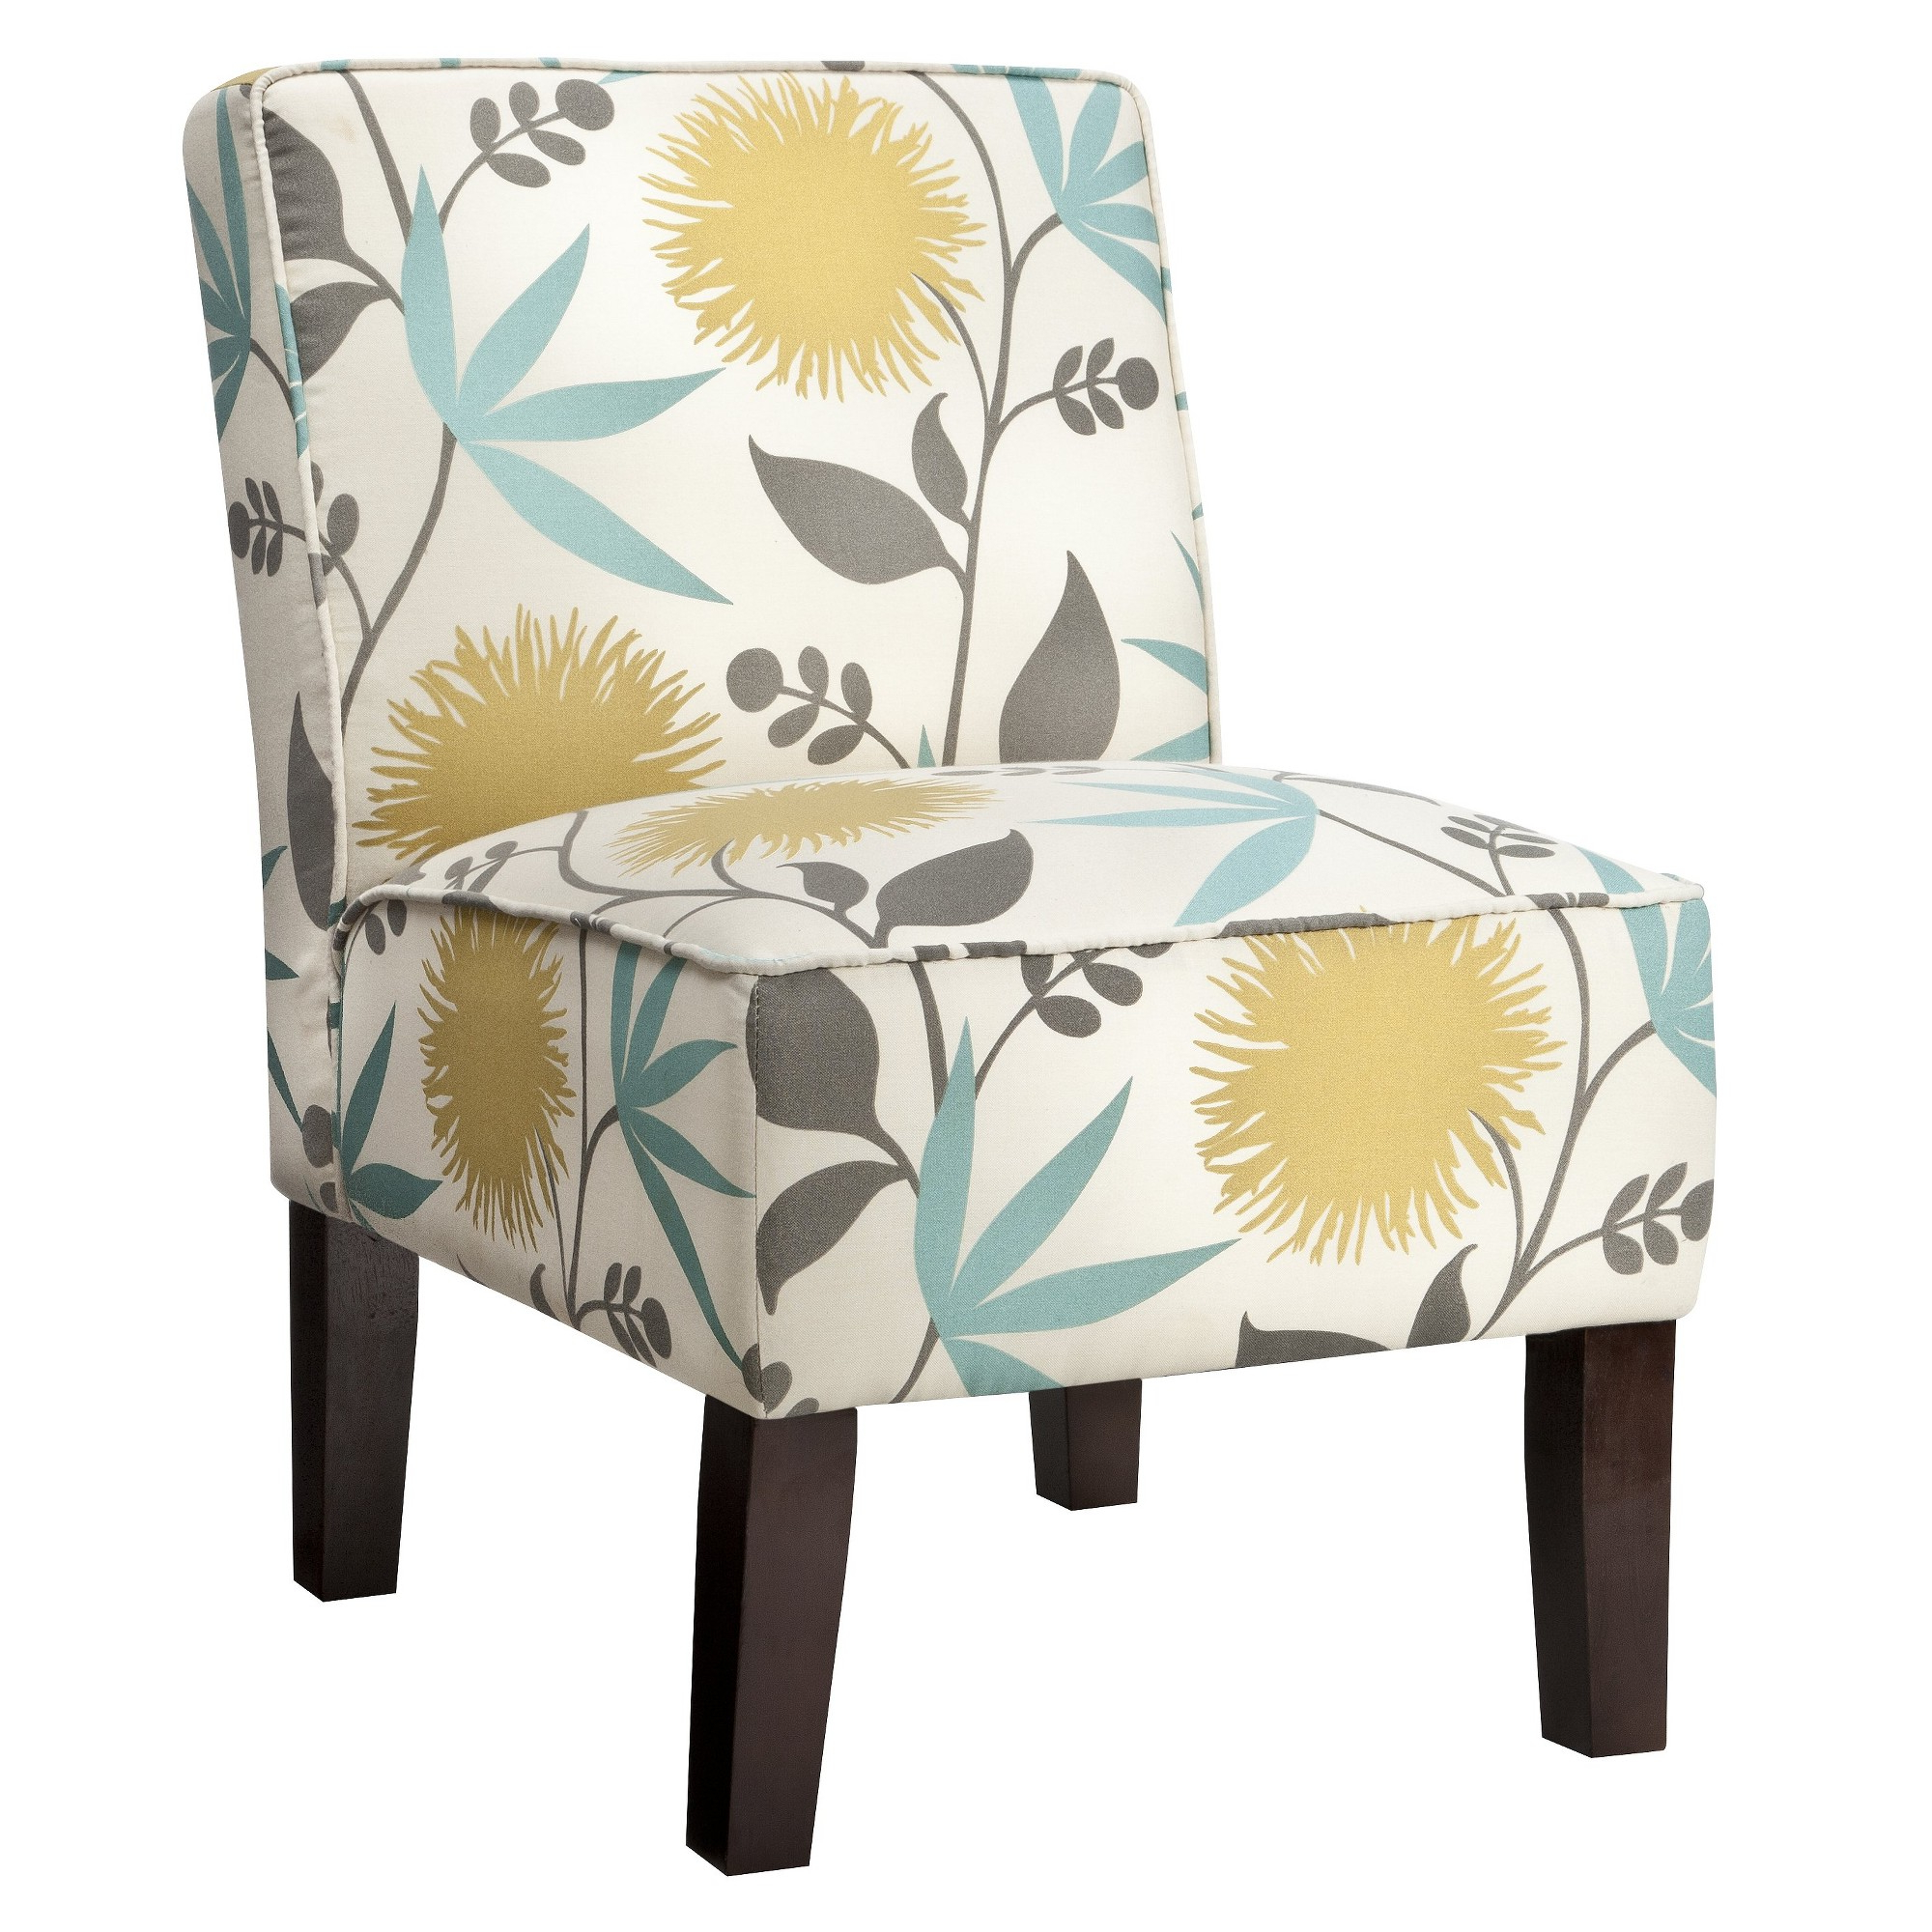 Burke Accent Print Slipper Chair – Polly Aegean Regarding Recent Armless Upholstered Slipper Chairs (View 3 of 20)